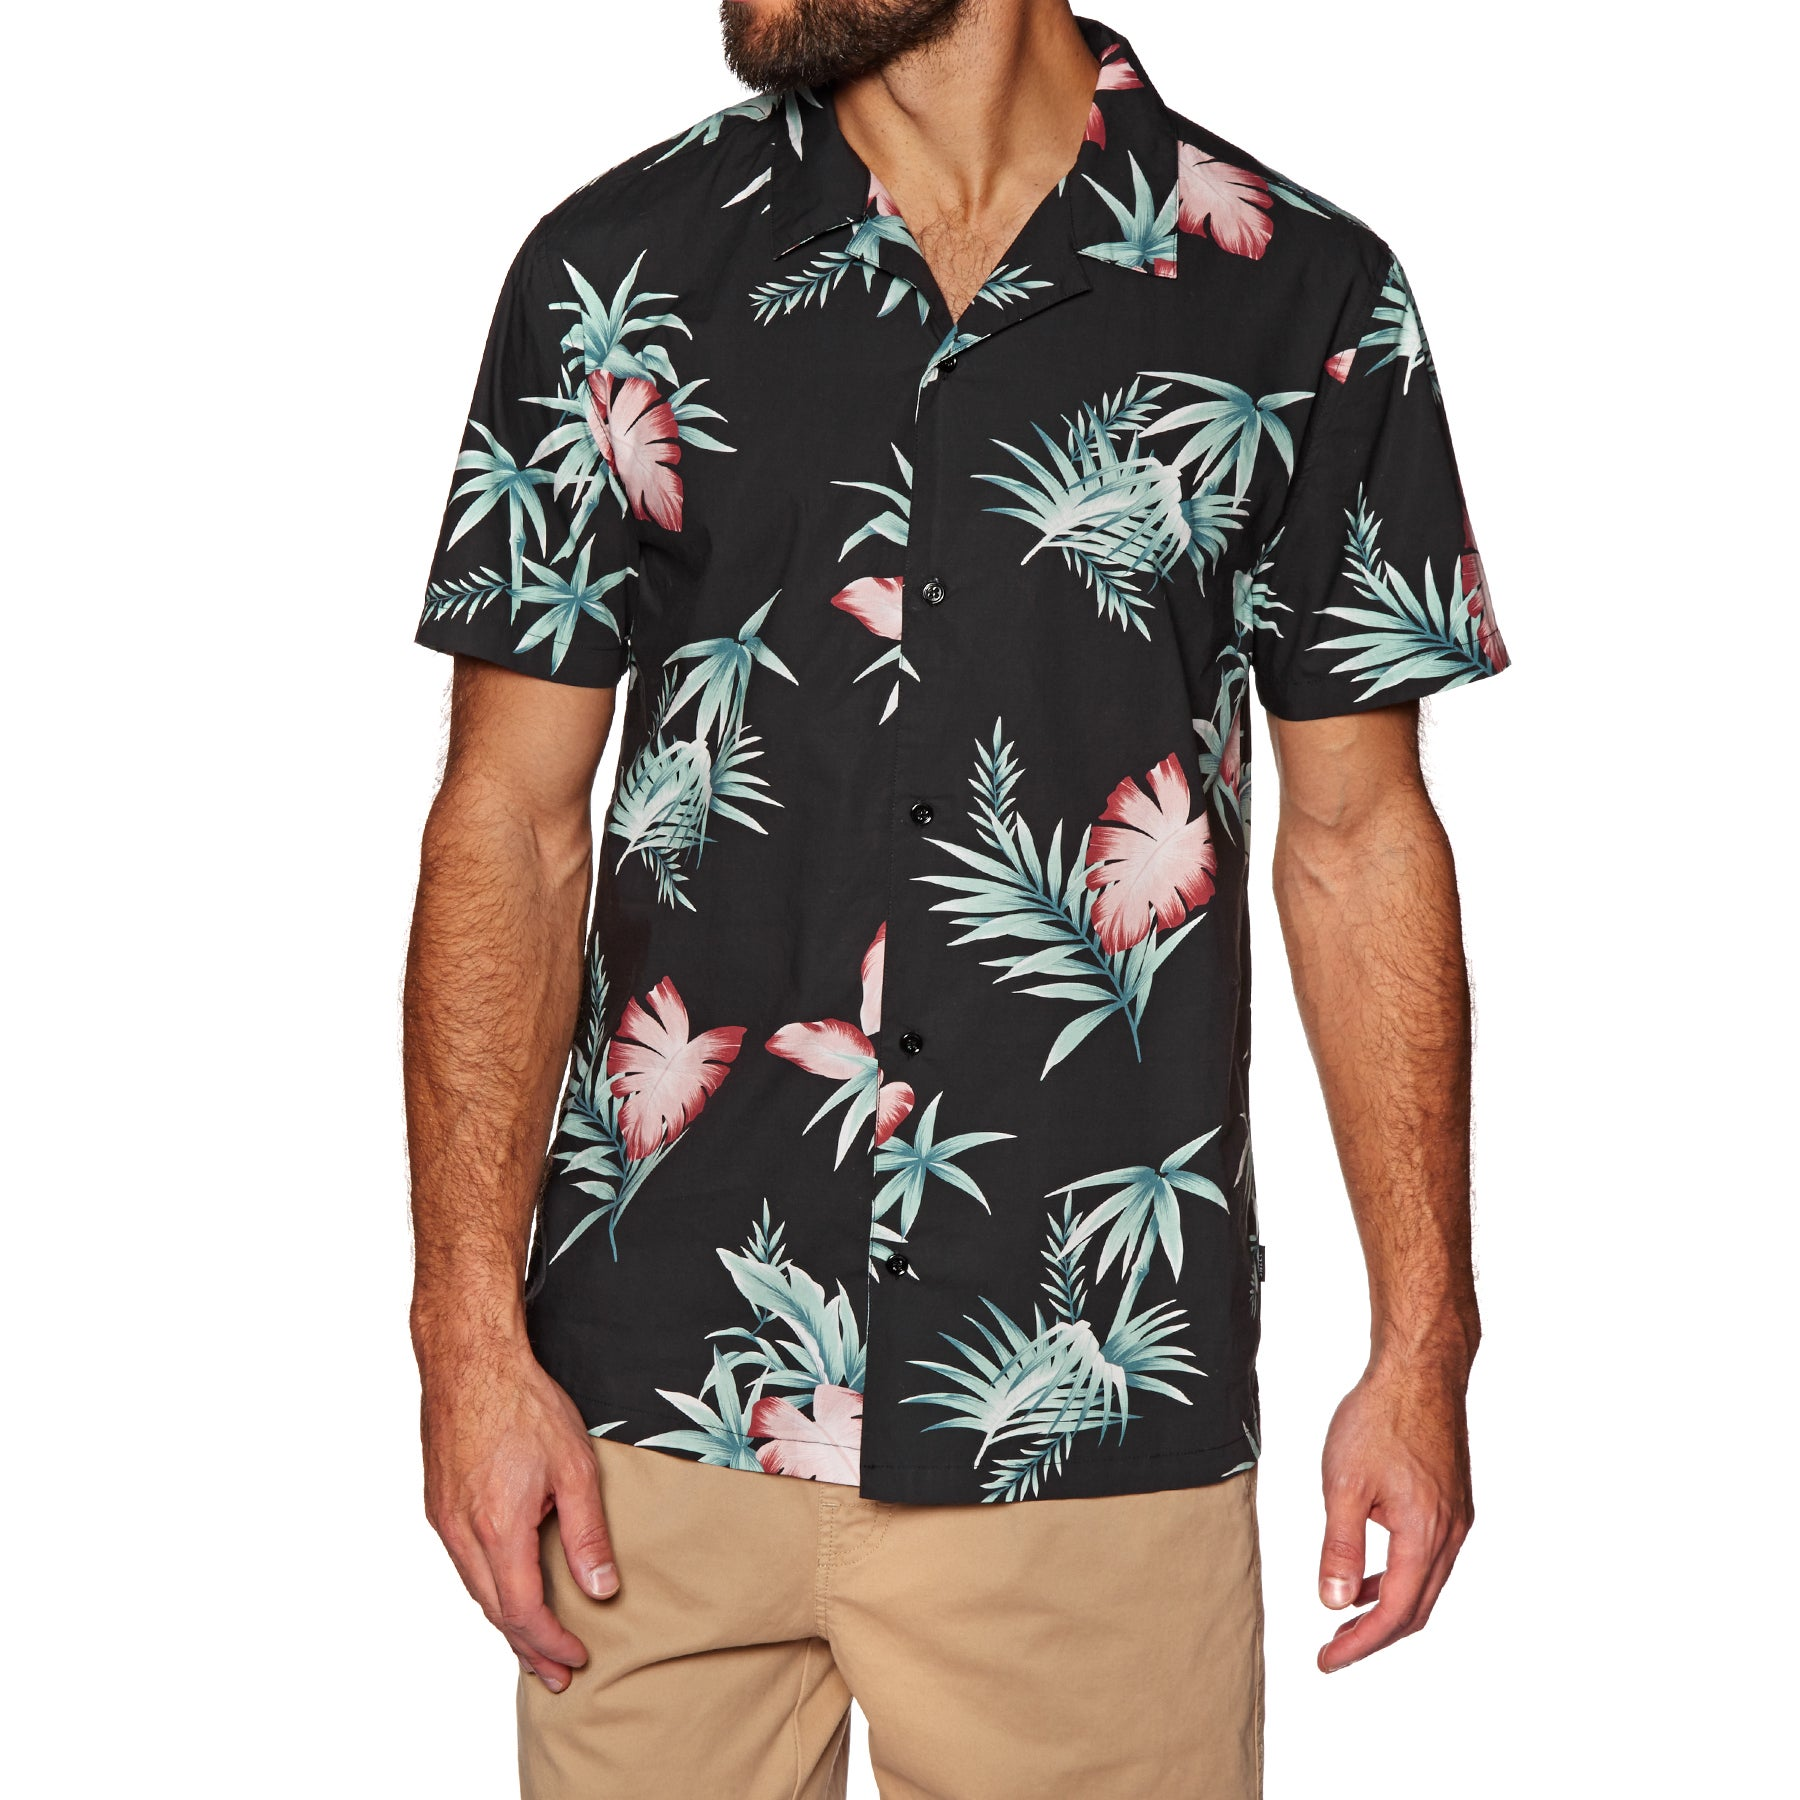 SWELL Aloha Short Sleeve Shirt - Black